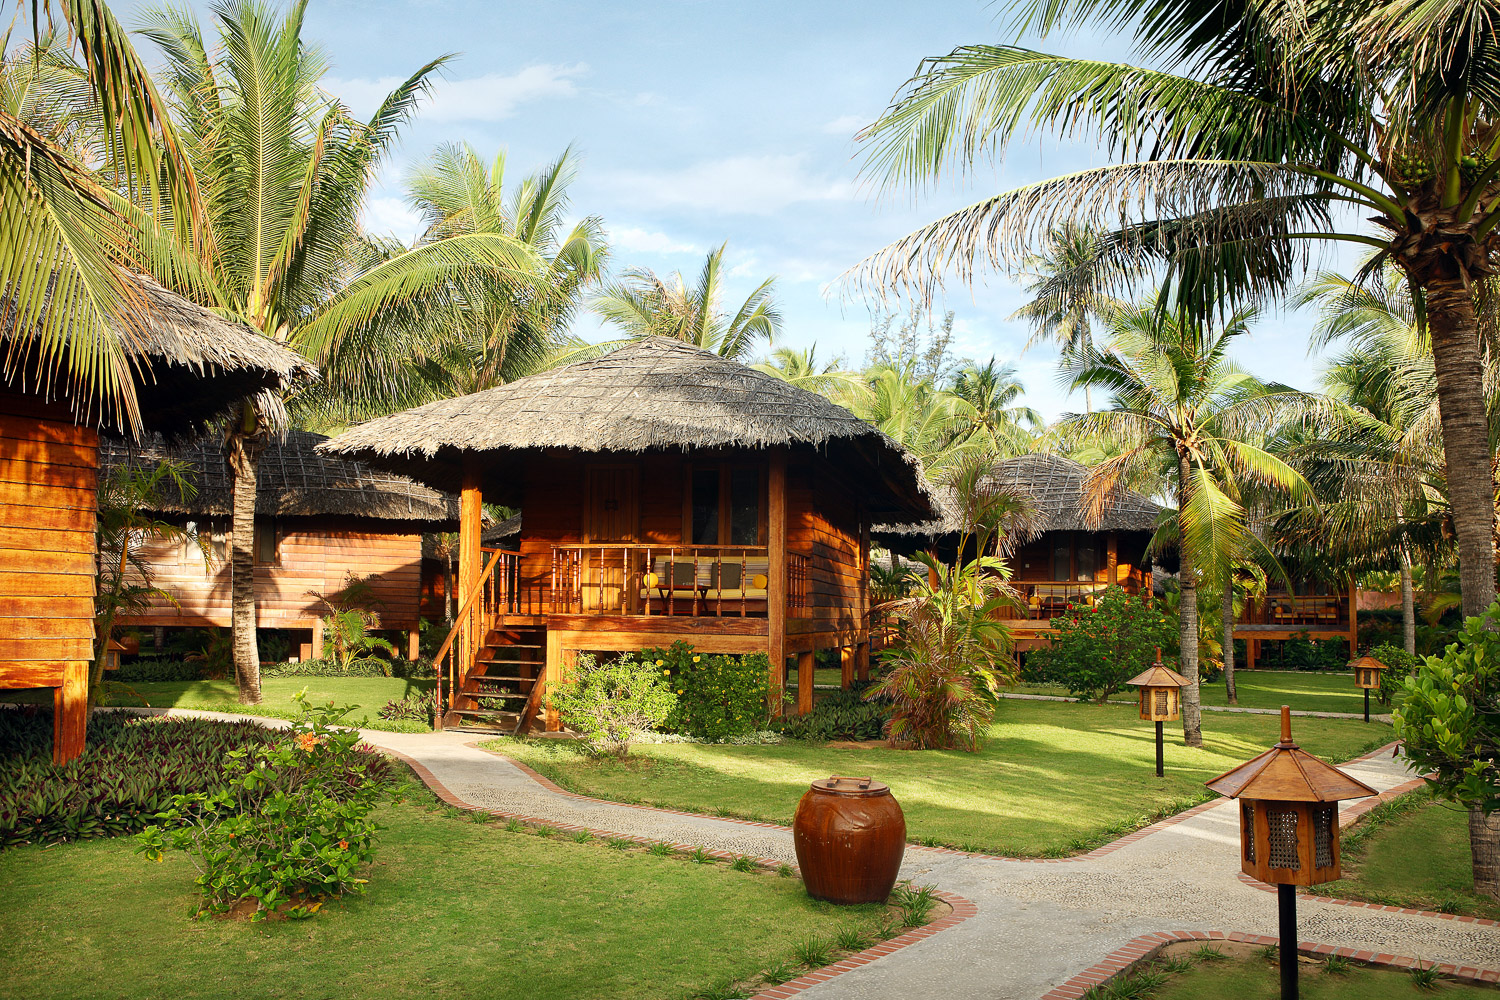 Bungalow, Coco Beach Resort